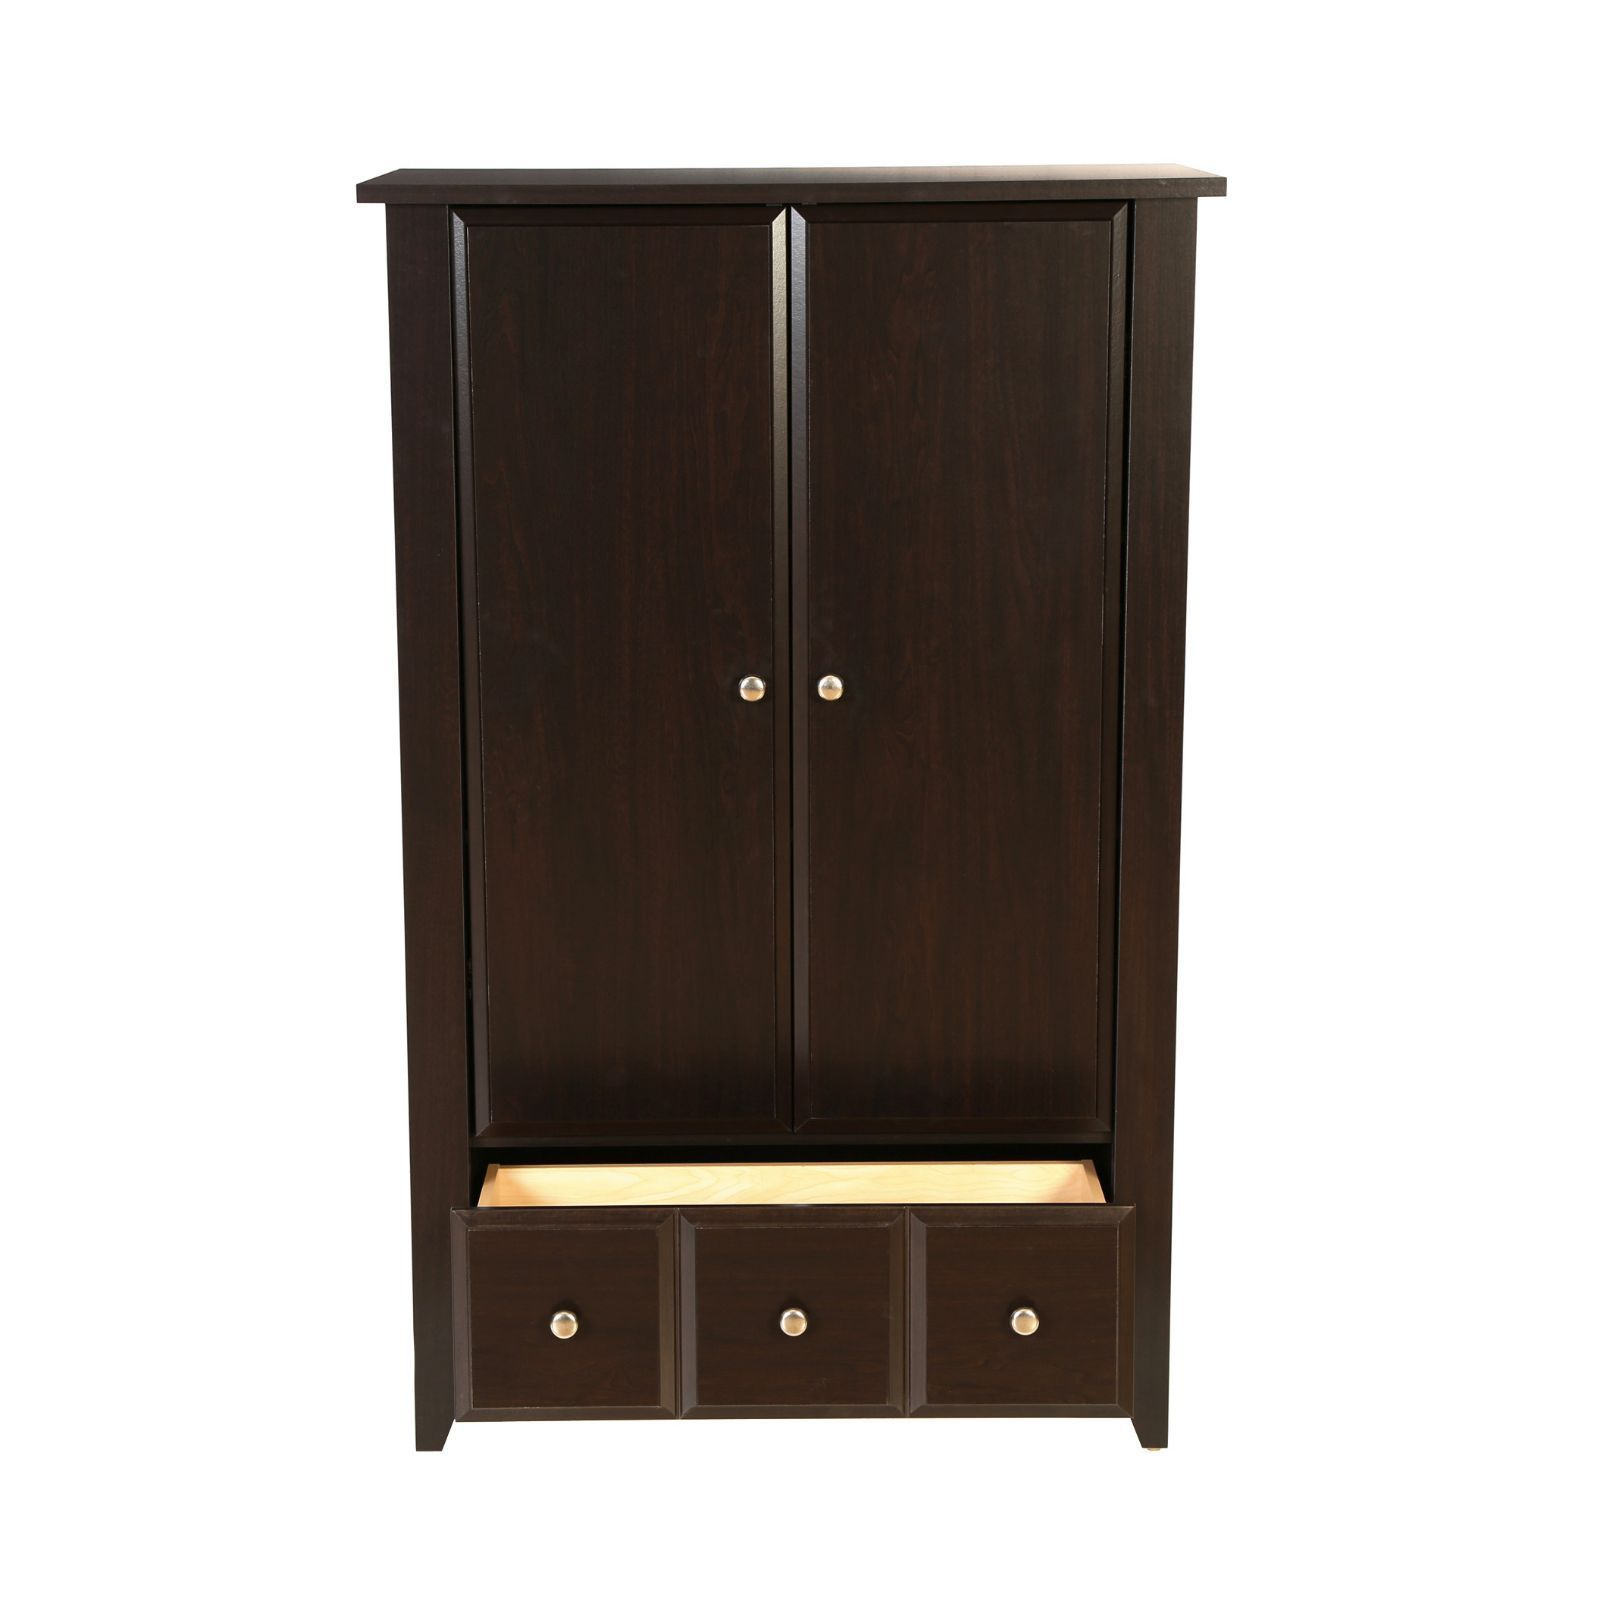 Marvelous photograph of Armoire Dark Brown Wooden Wardrobe Clothes Closet Bedroom Furniture  with #A1712A color and 1600x1600 pixels